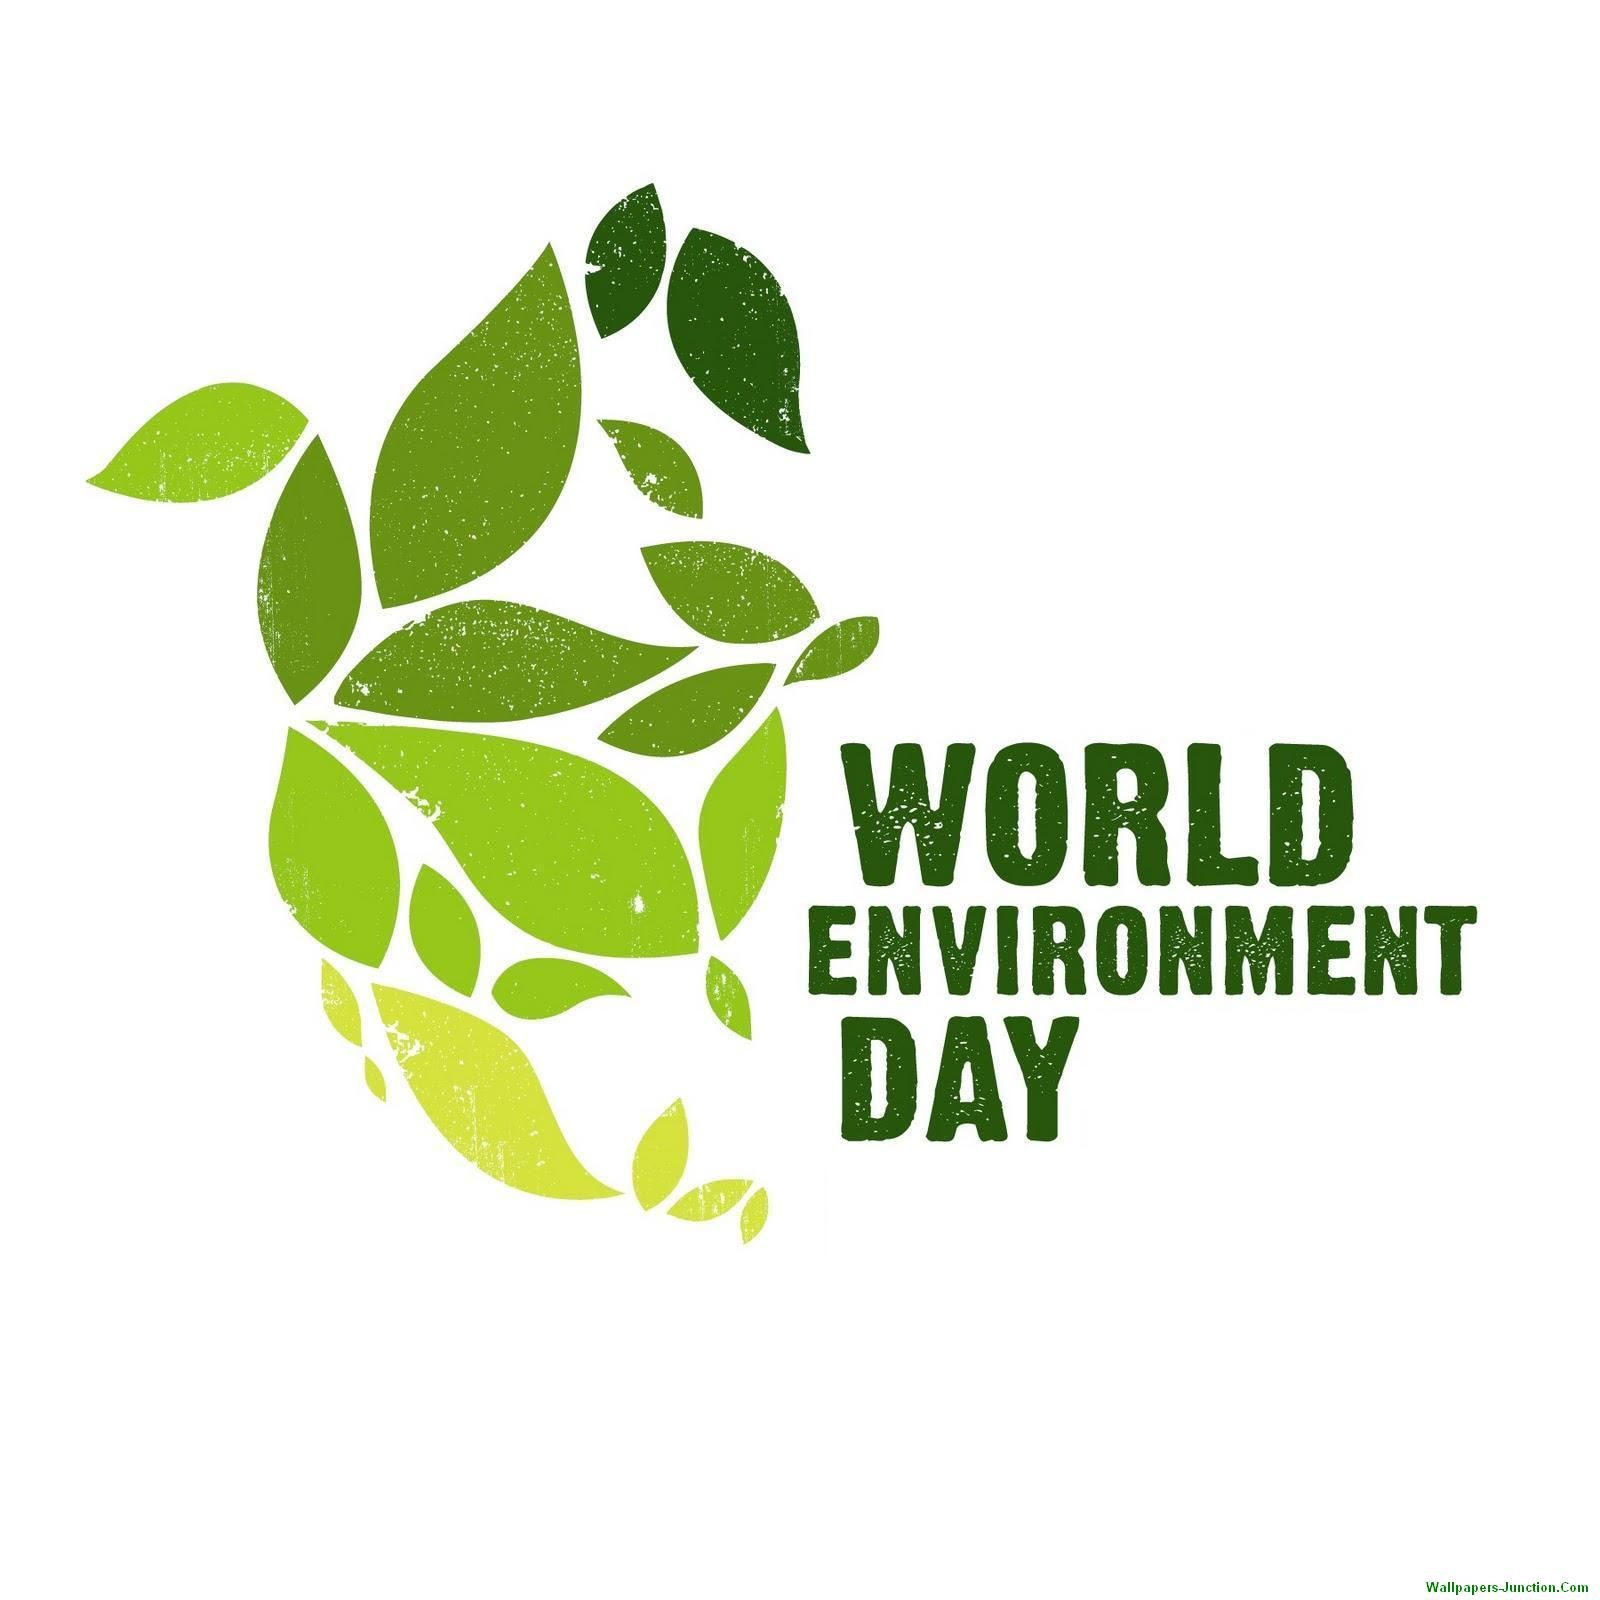 World Environment Day 2018 slogans, pictures, Quotes, wallpapers, images, posters and messages